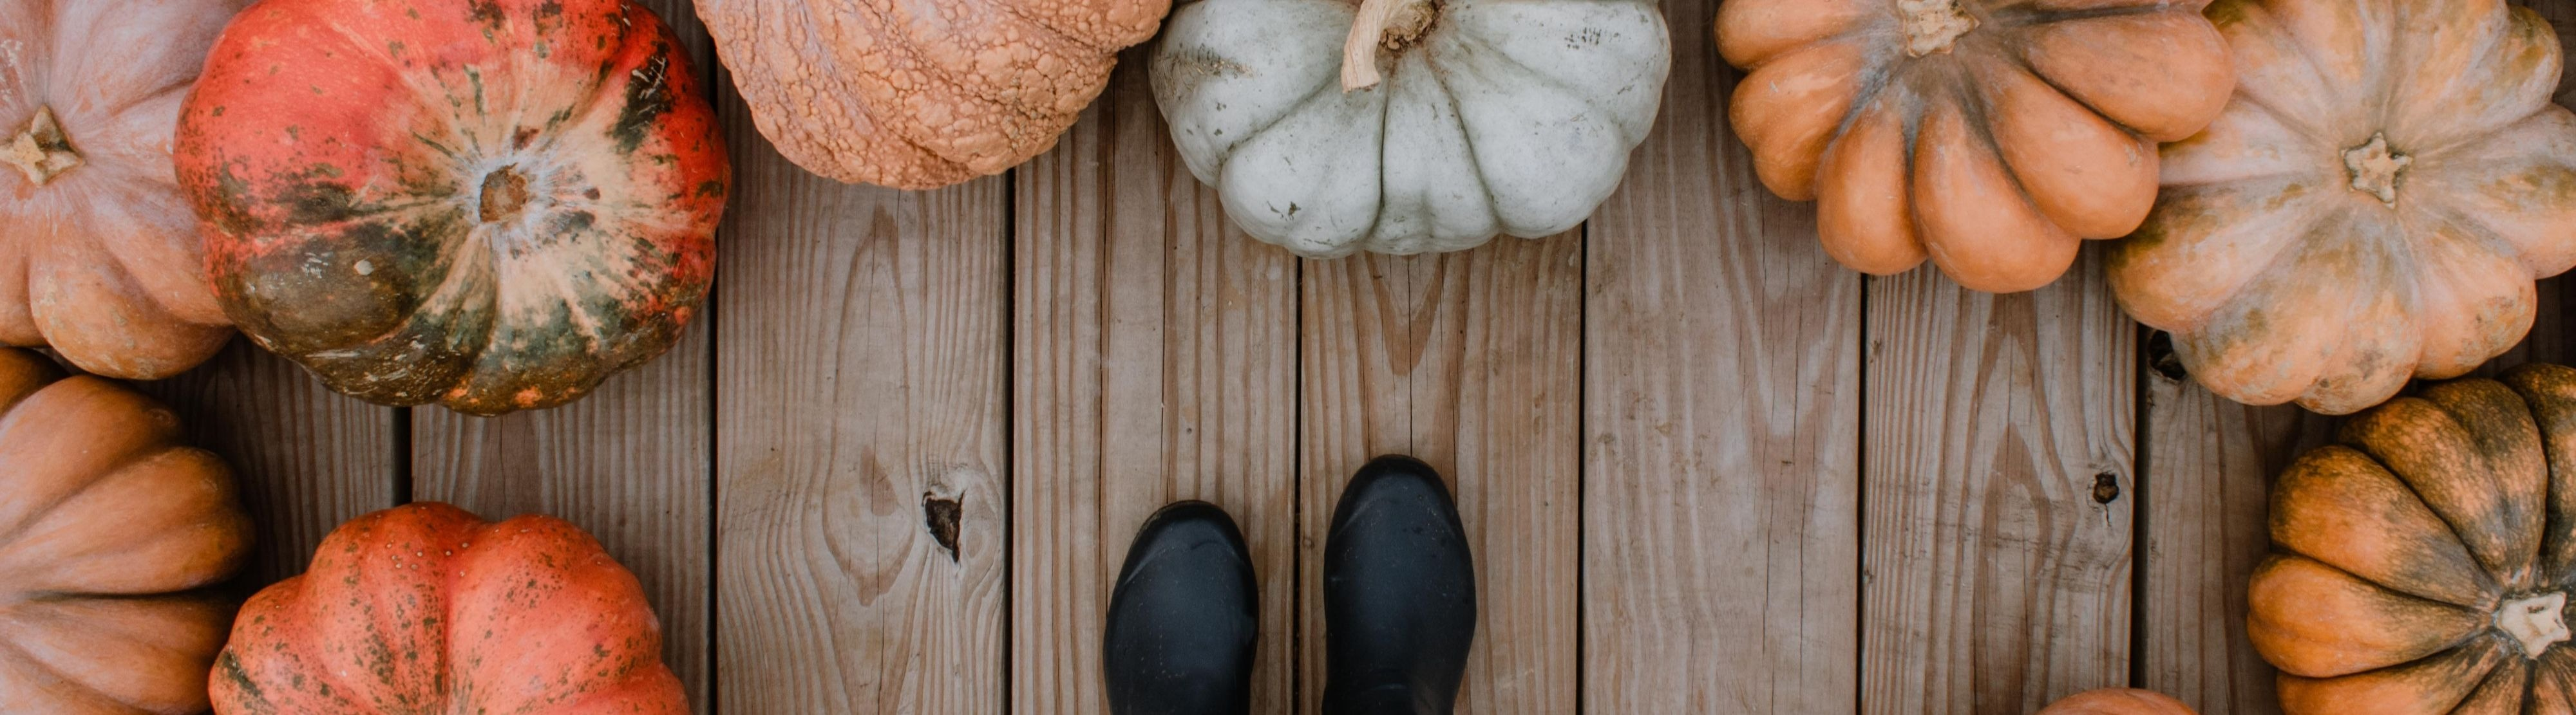 Why You Should Add More Pumpkin into Your Diet